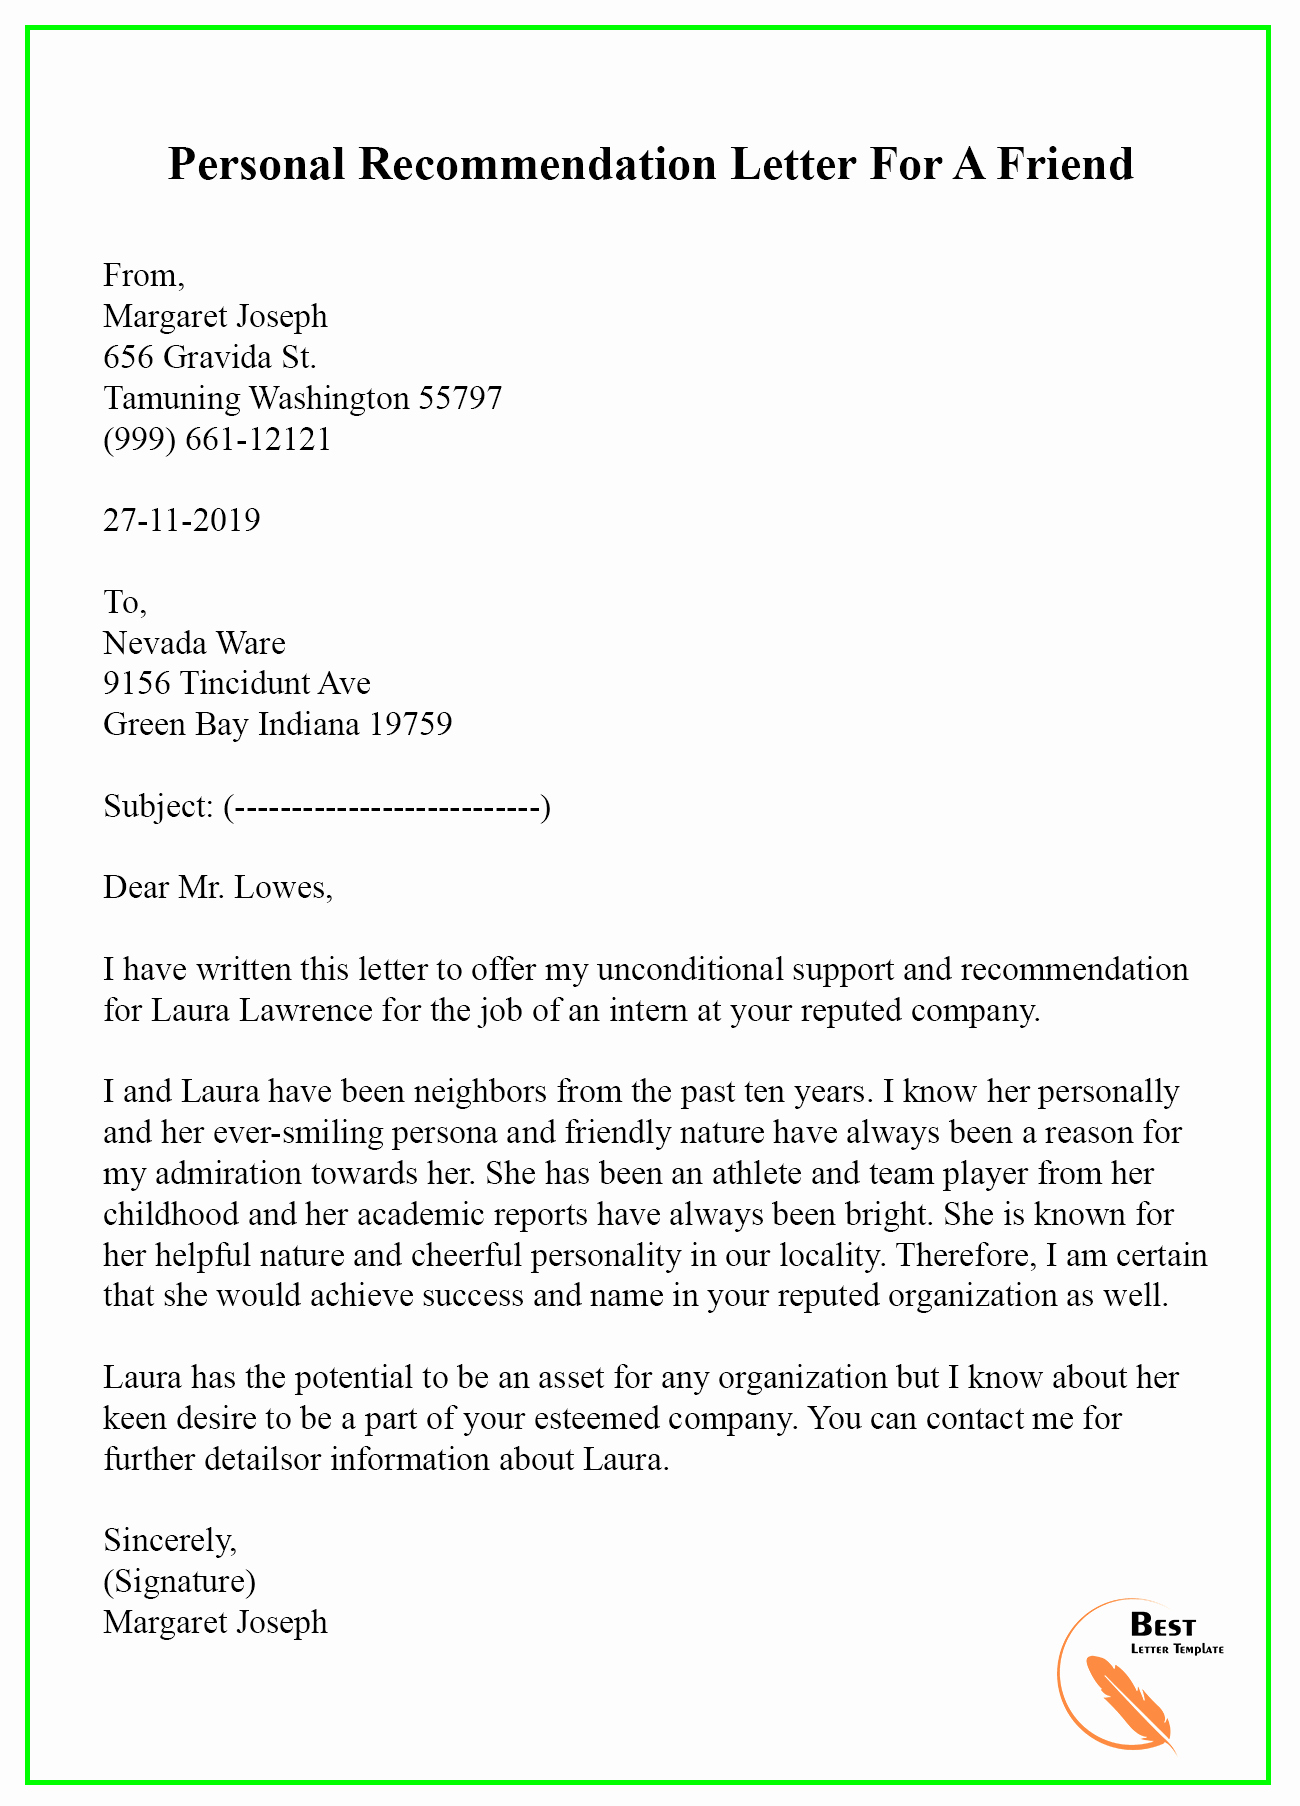 Letter Of Recommendation From Friend Fresh Re Mendation Letter for A Friend – format Sample & Example